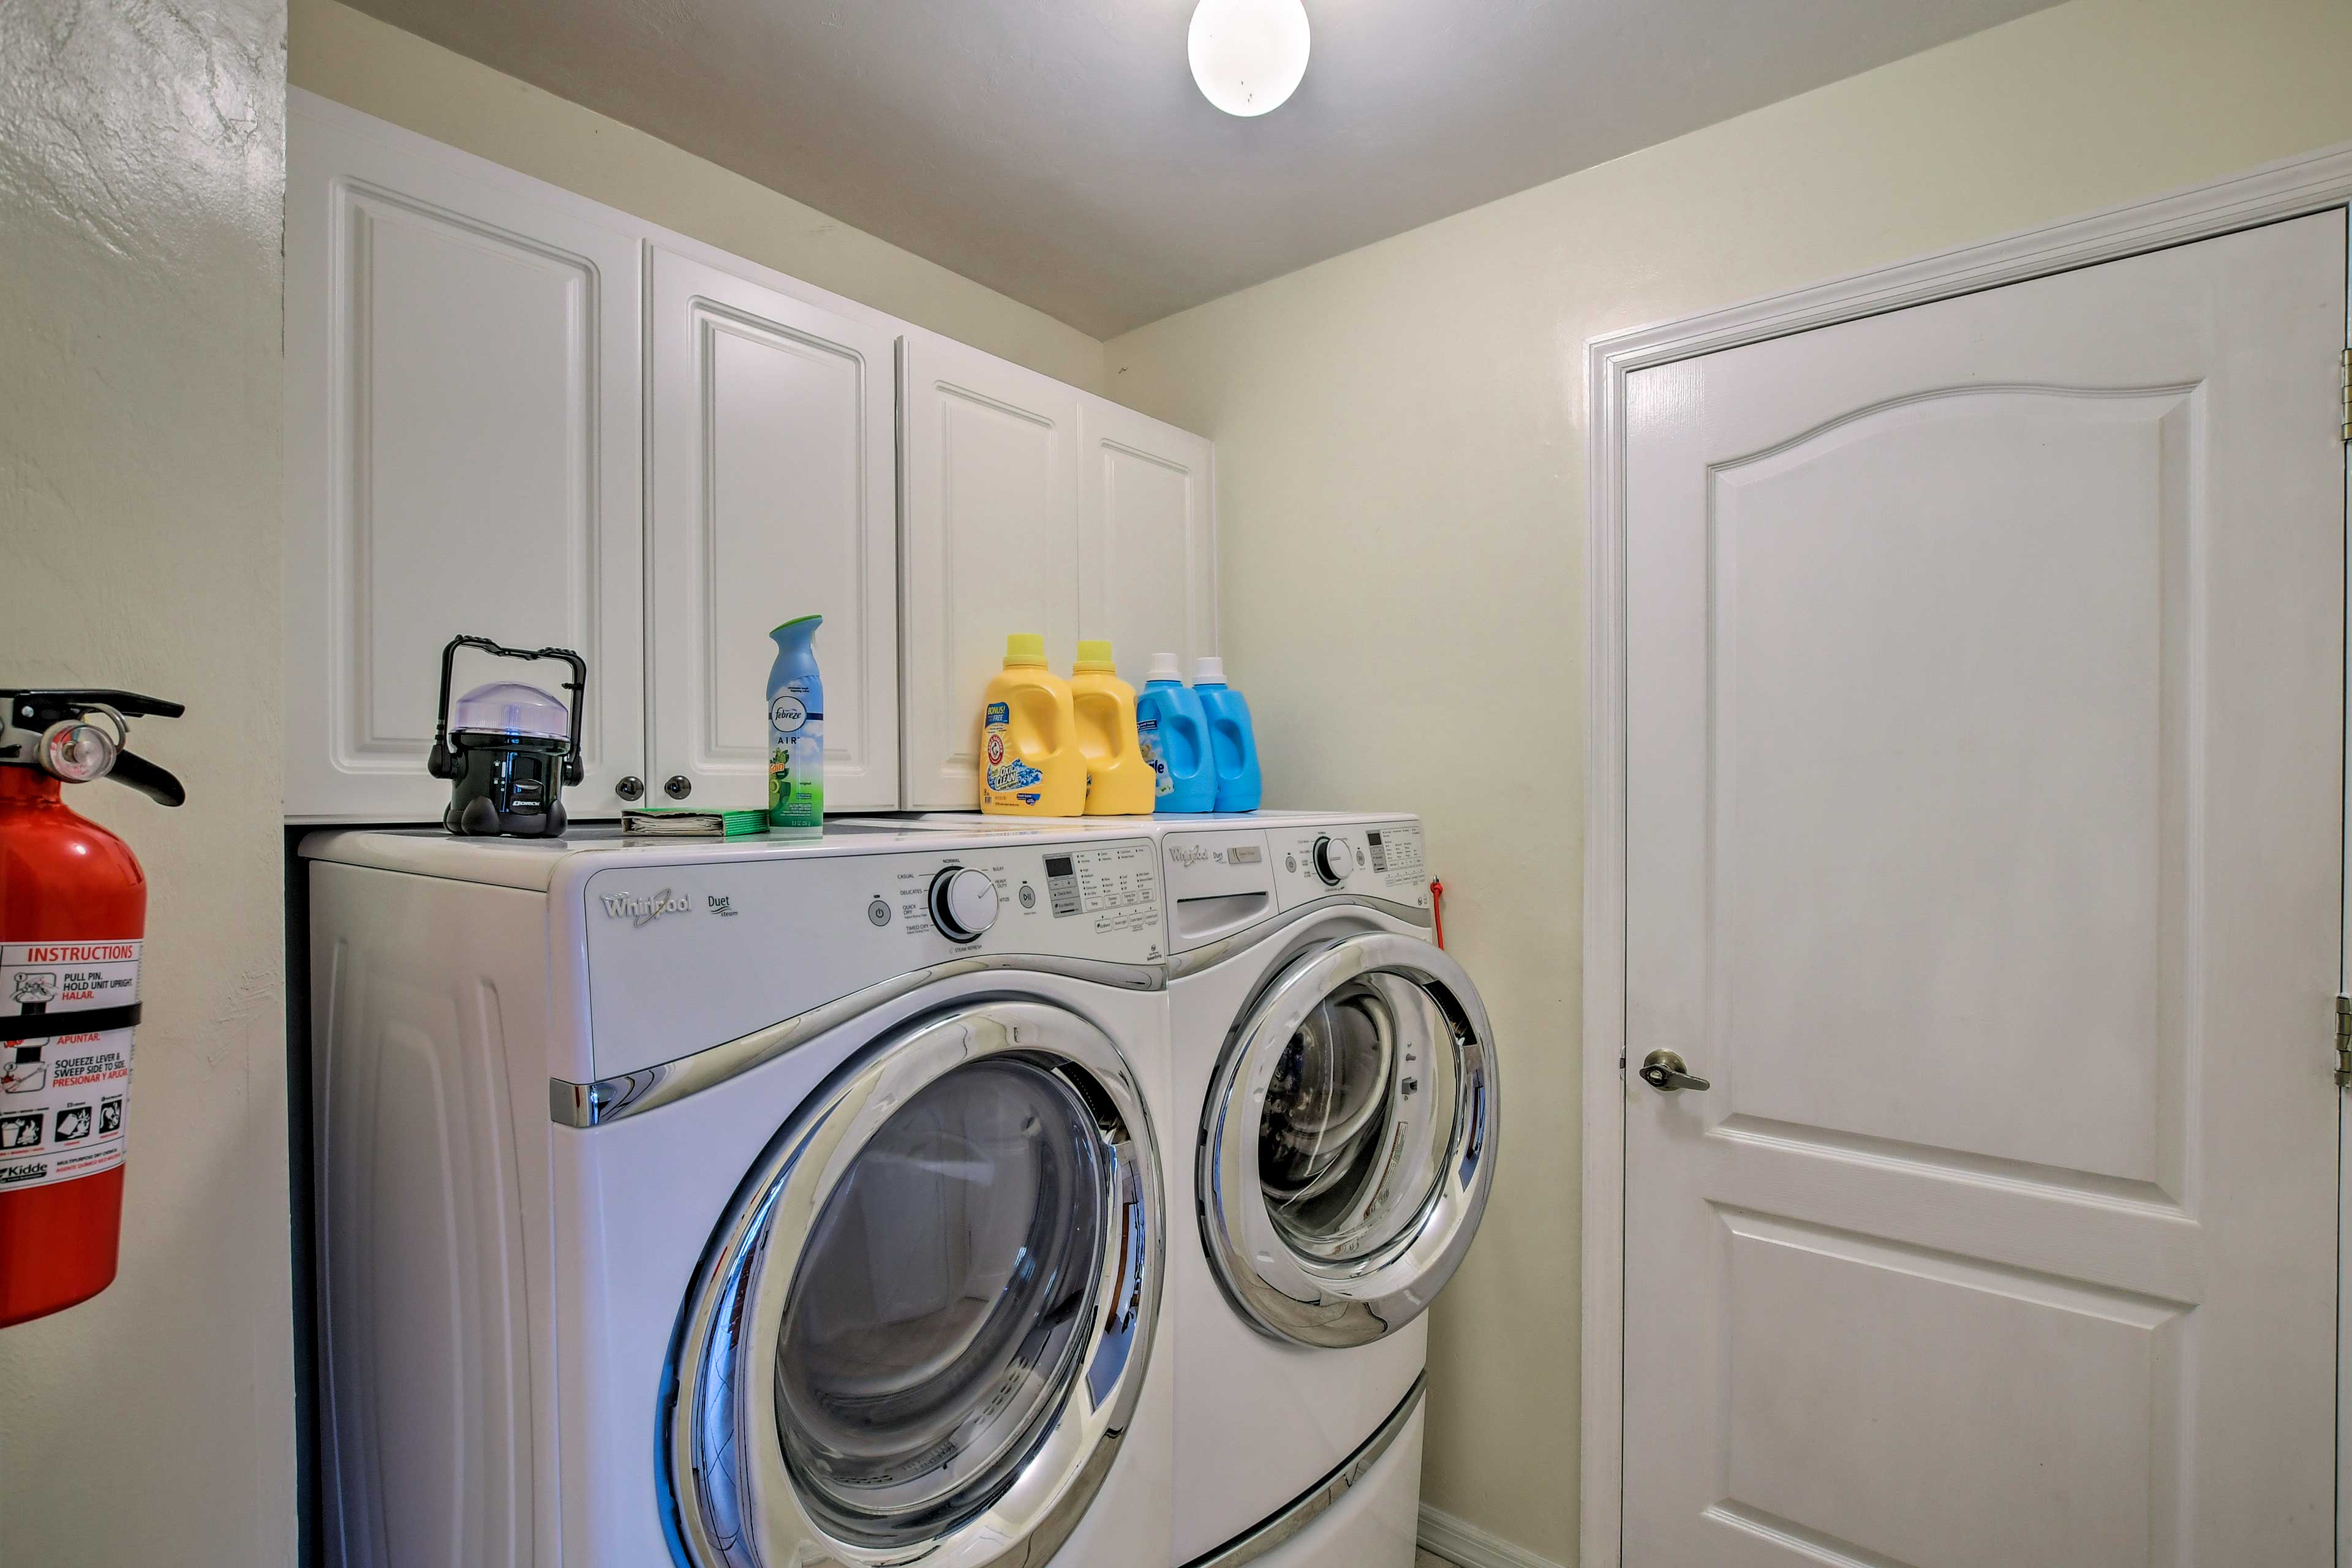 Keep your clothing clean during your stay with the in-unit washer and dryer.